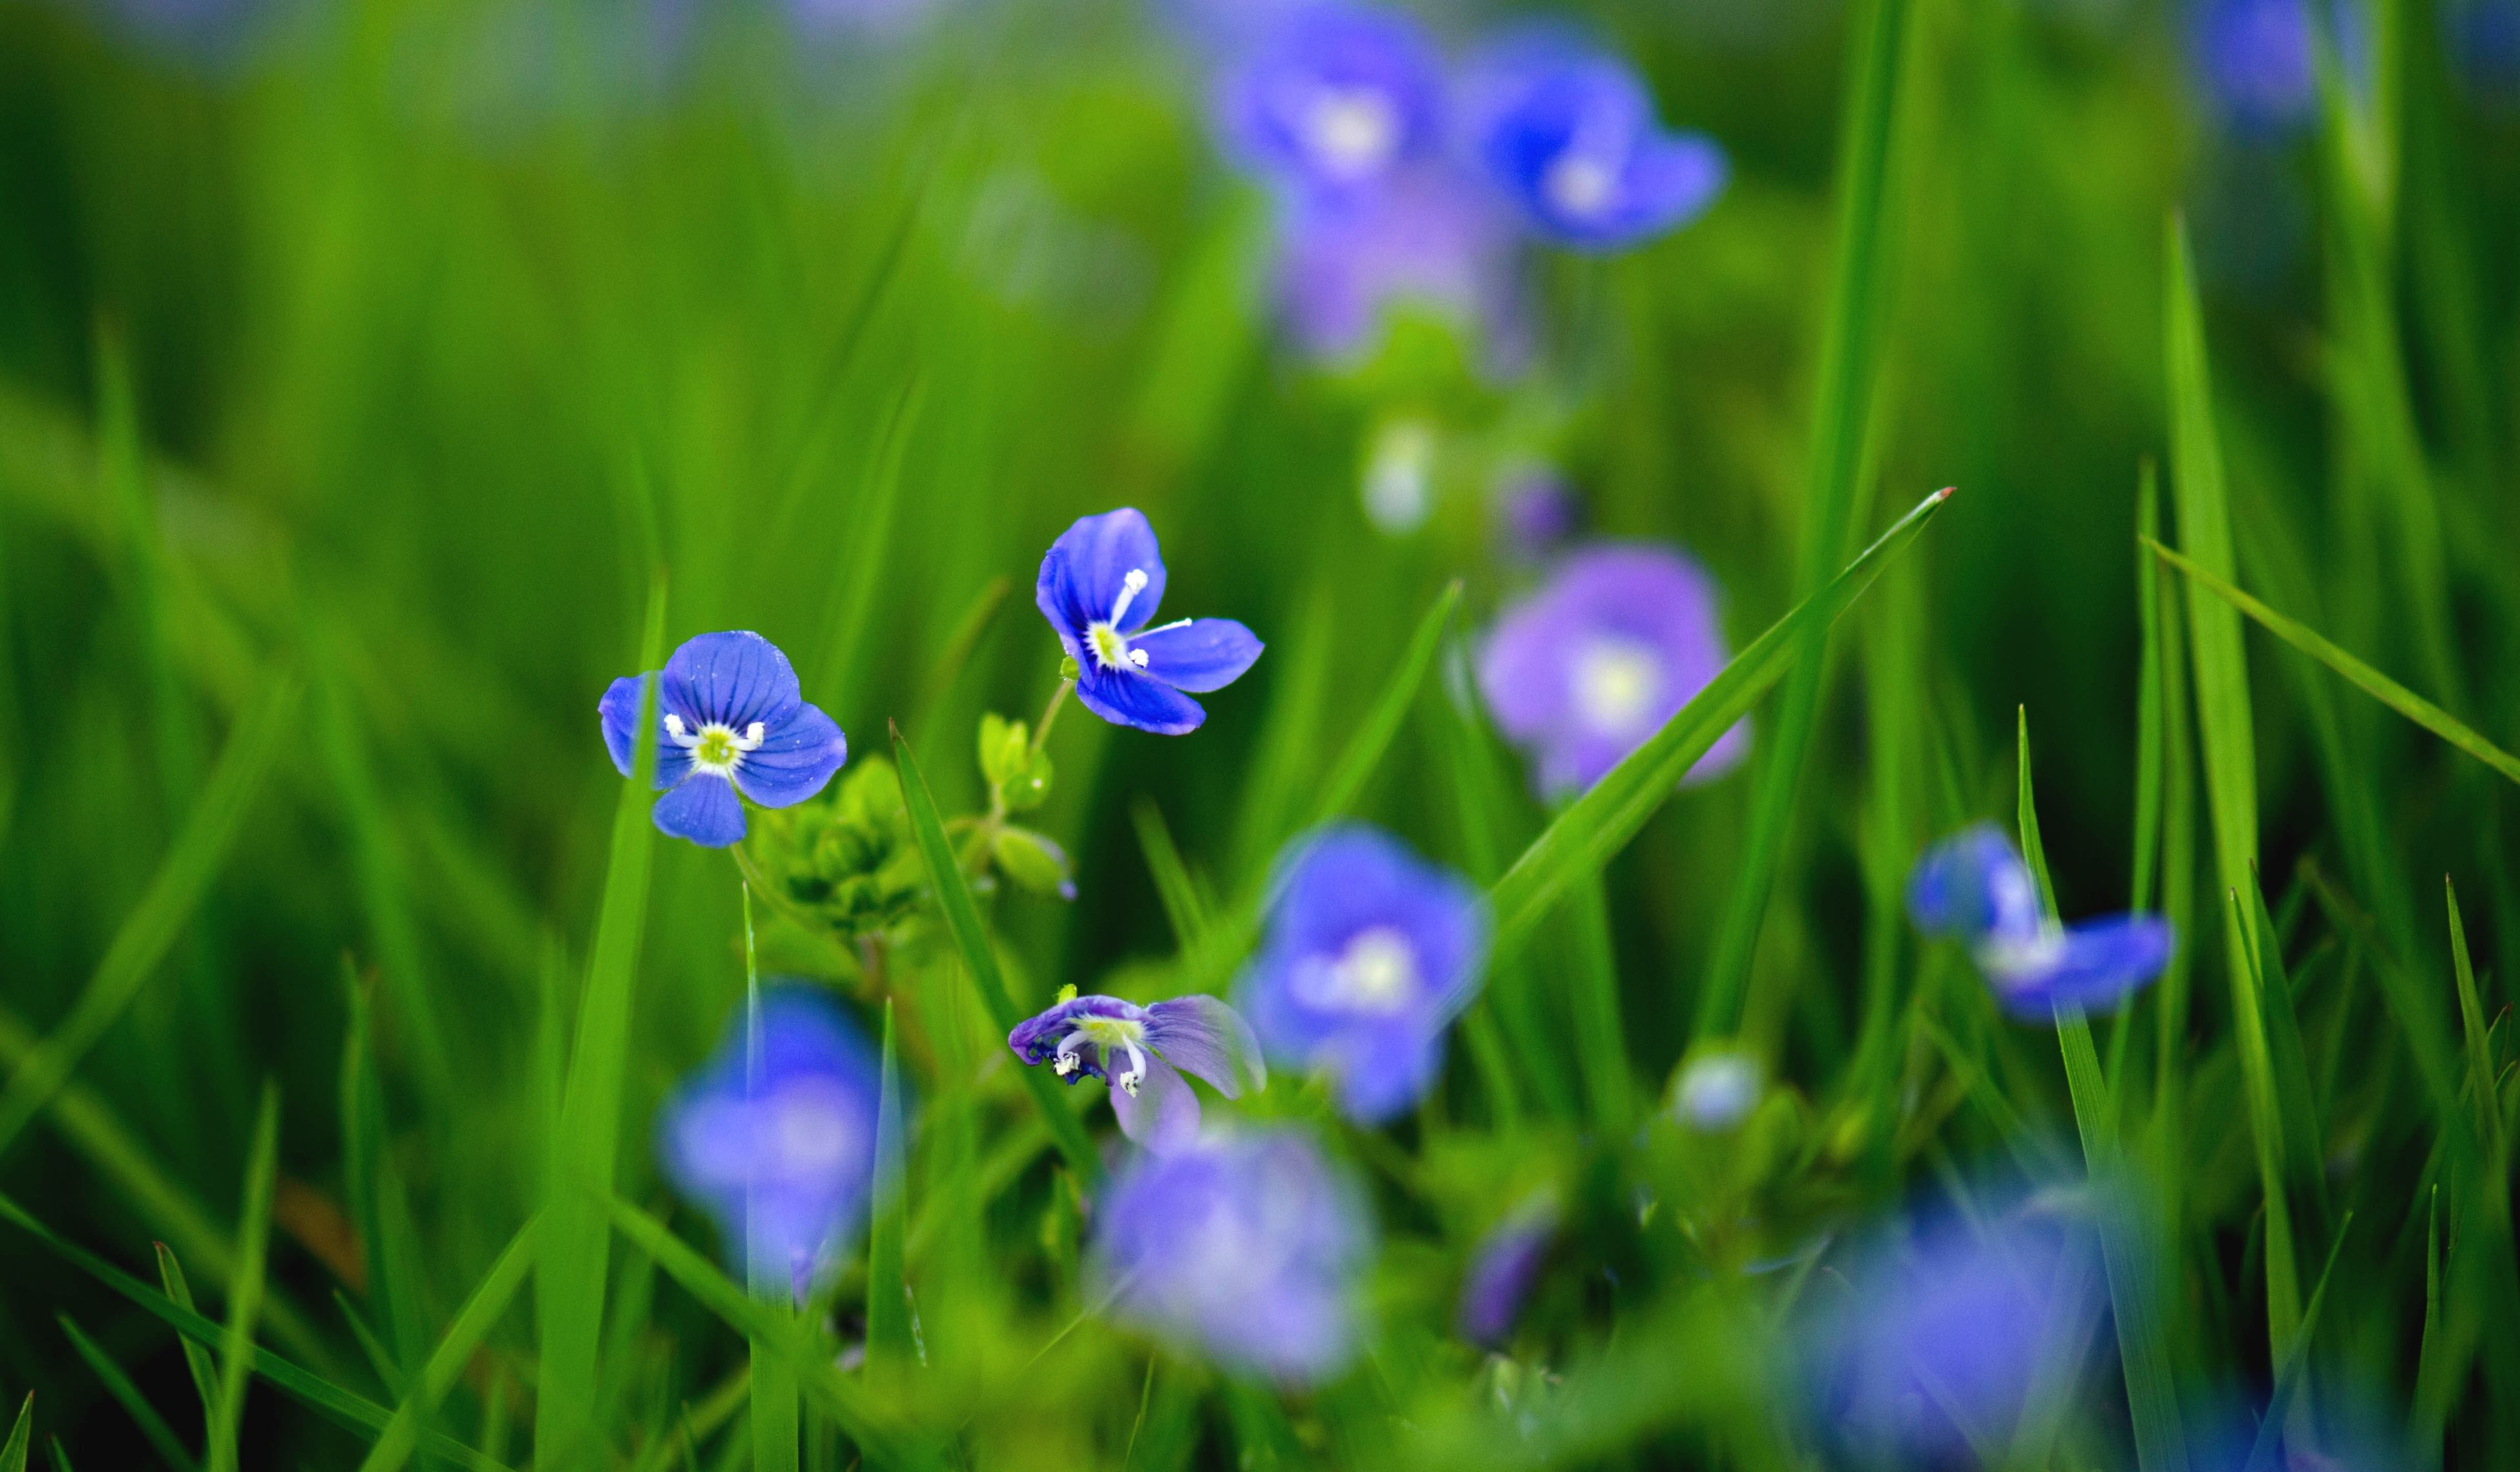 flower, purple, freshness, growth, fragility, beauty in nature, petal, plant, focus on foreground, nature, blue, blooming, field, selective focus, flower head, close-up, stem, in bloom, wildflower, green color